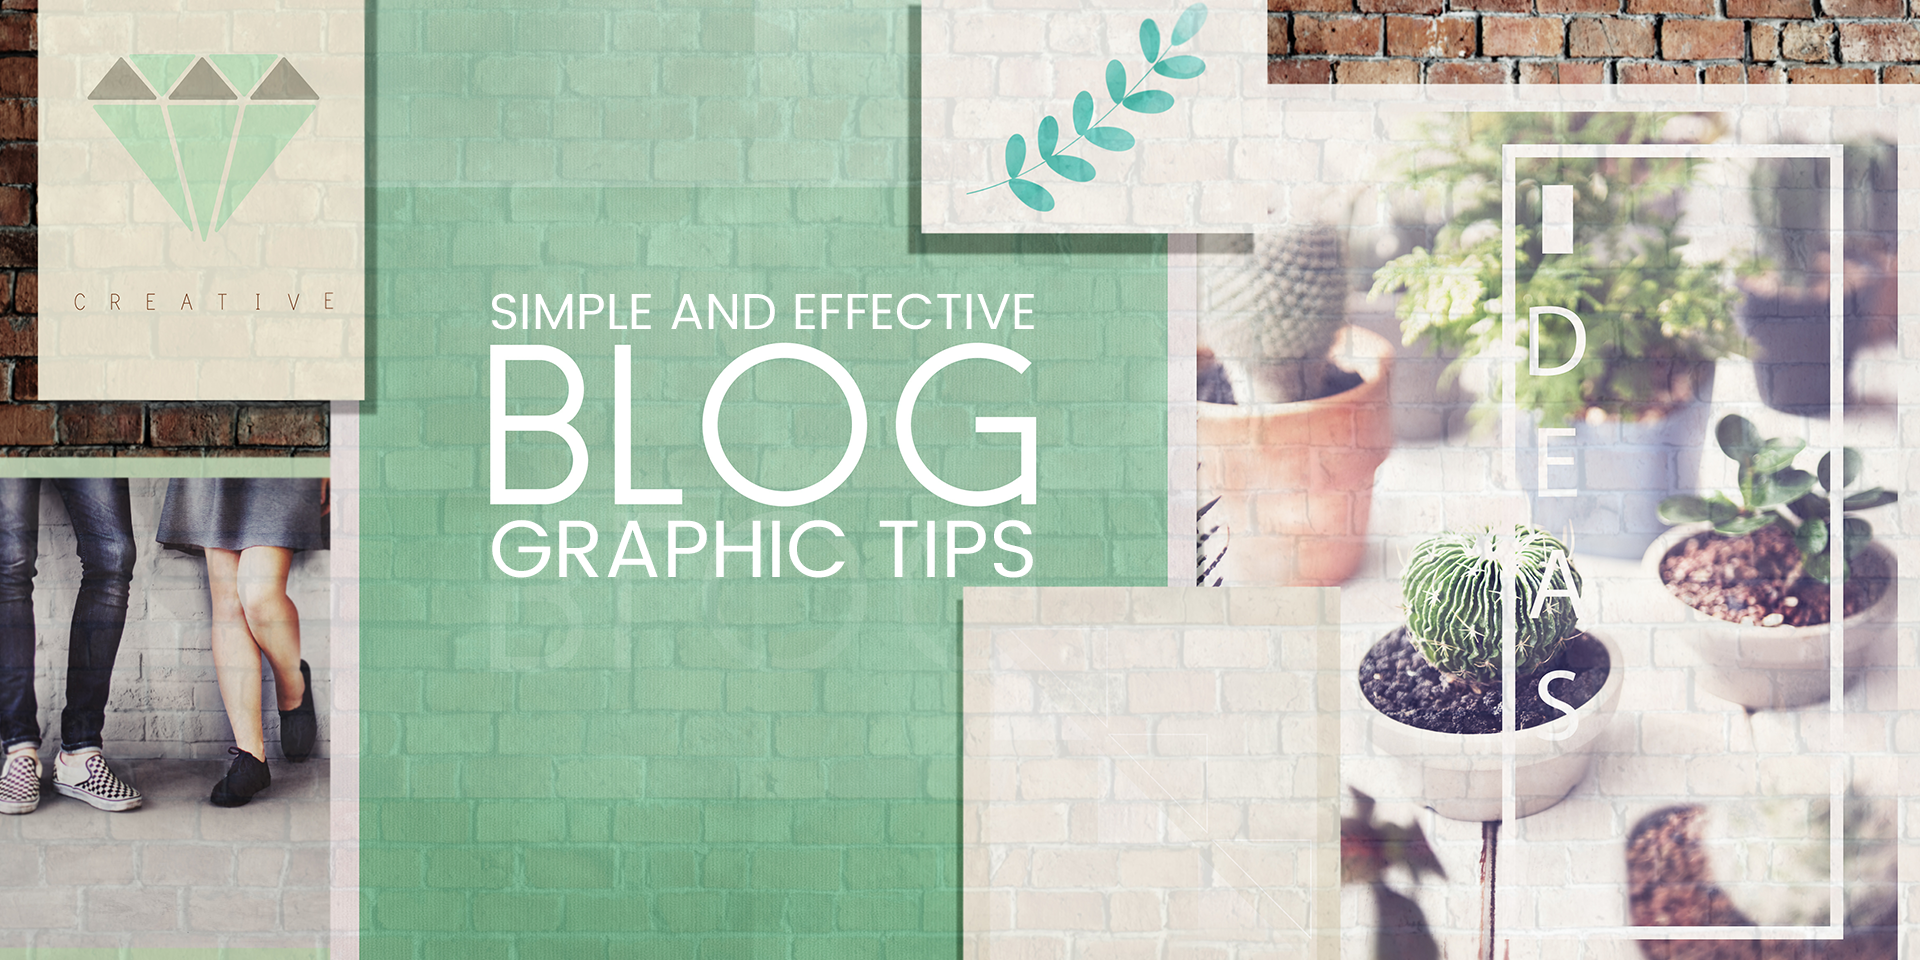 Simple and Effective Blog Graphic Tips